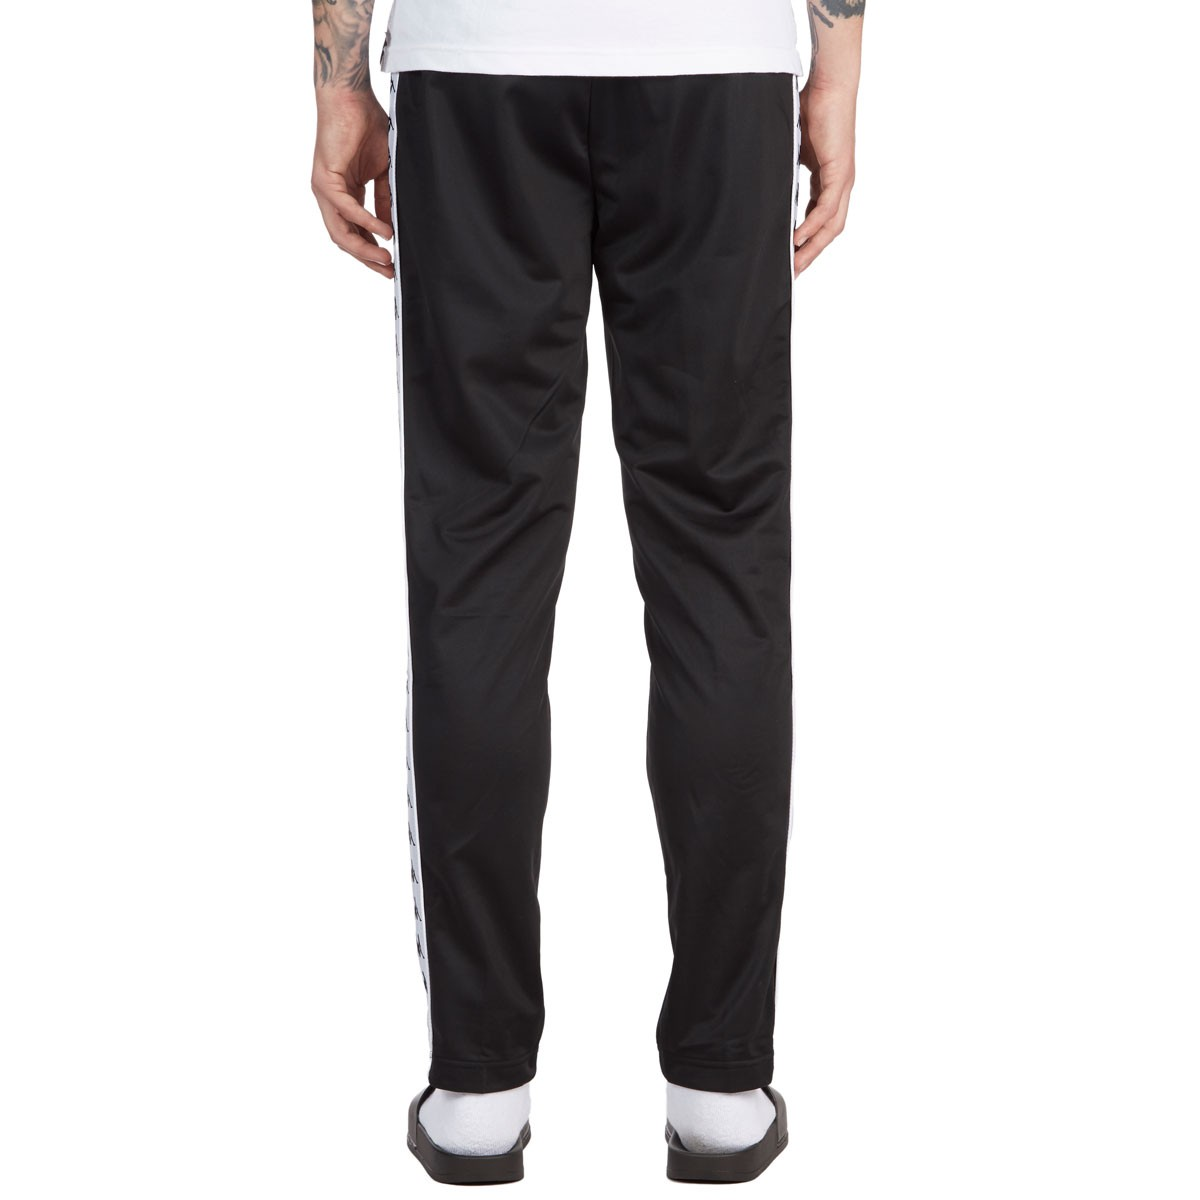 b54c1f5f31 Kappa 222 Banda Astoria Slim Pants